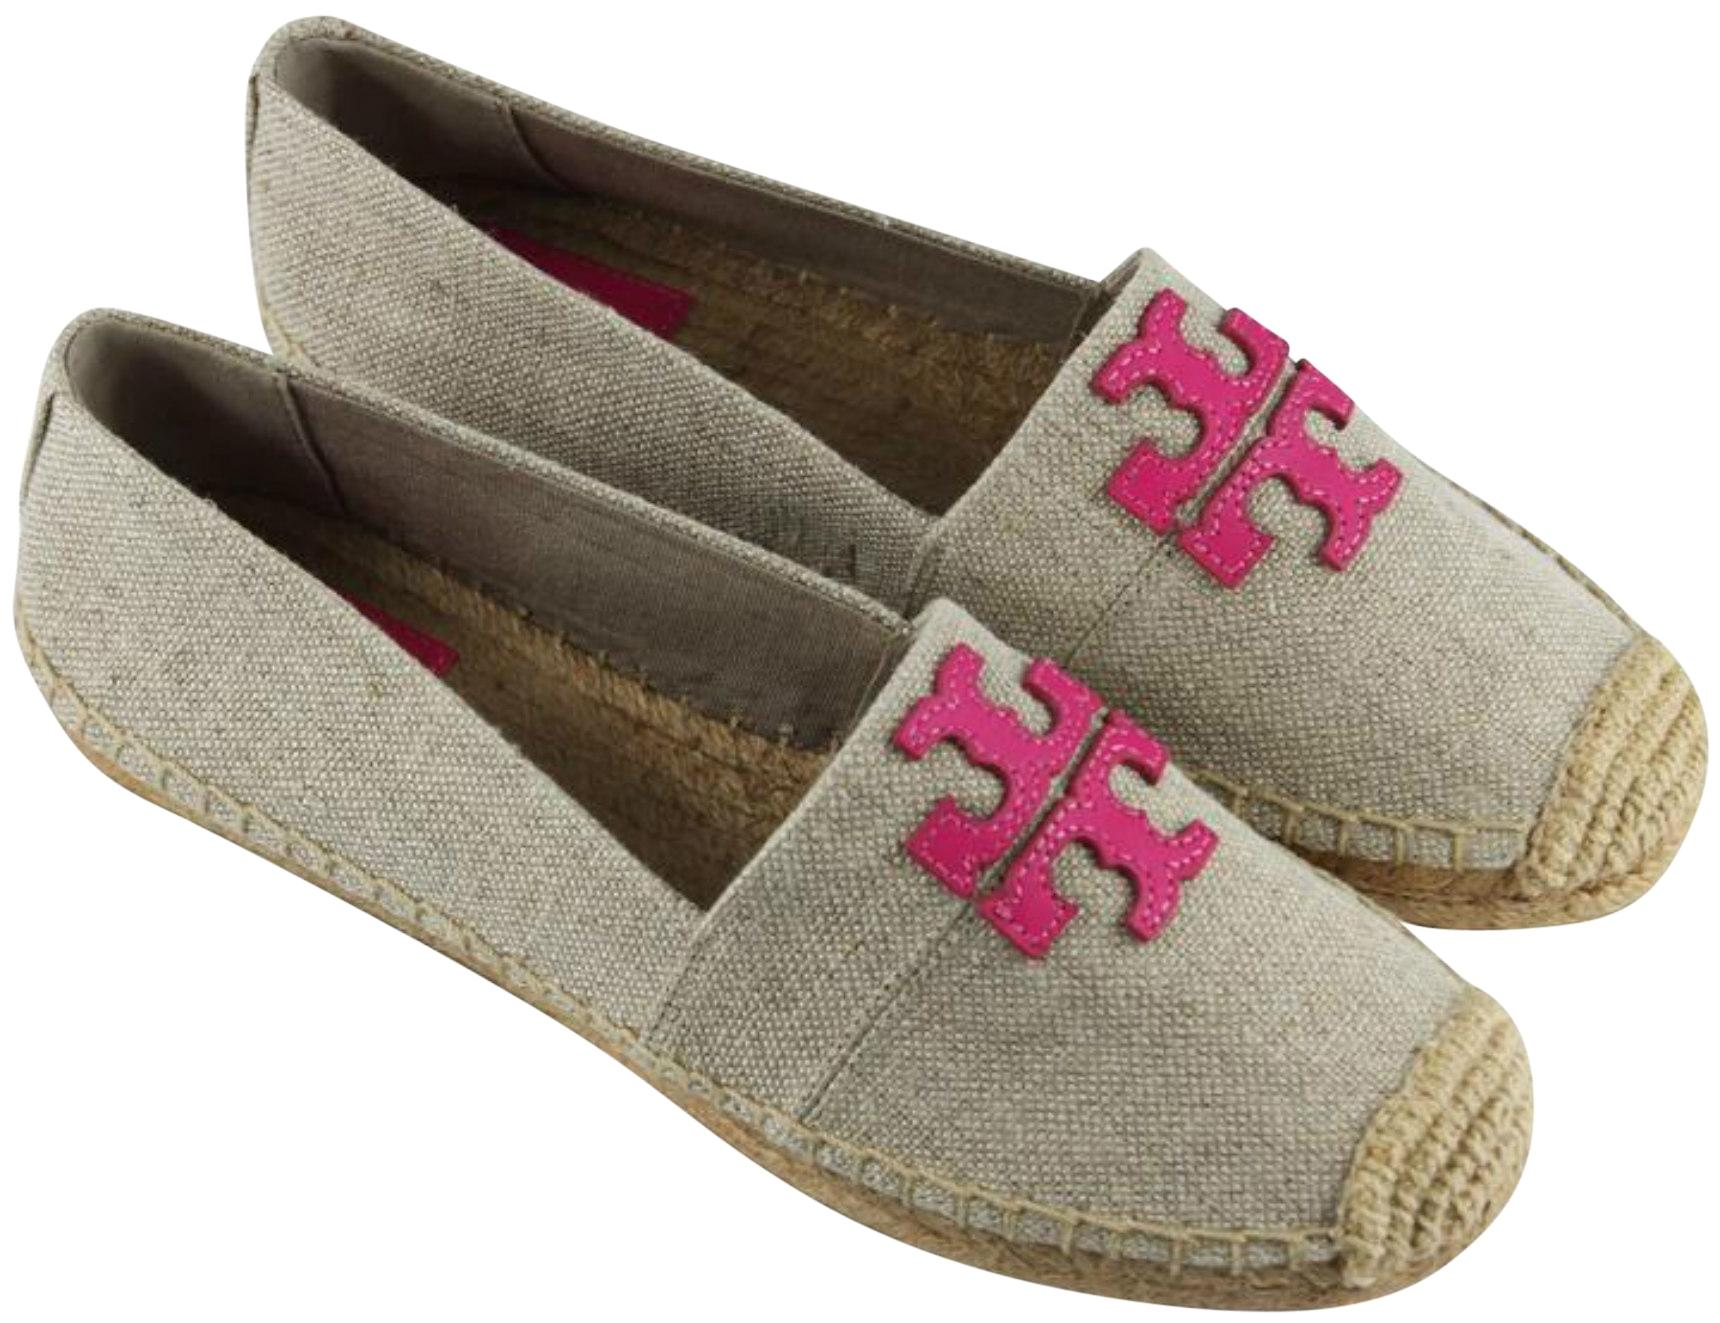 cdc3c696c Tory Burch Gray Pink Weston Canvas Canvas Canvas Espadrilles Flats Size US  8.5 Regular (M